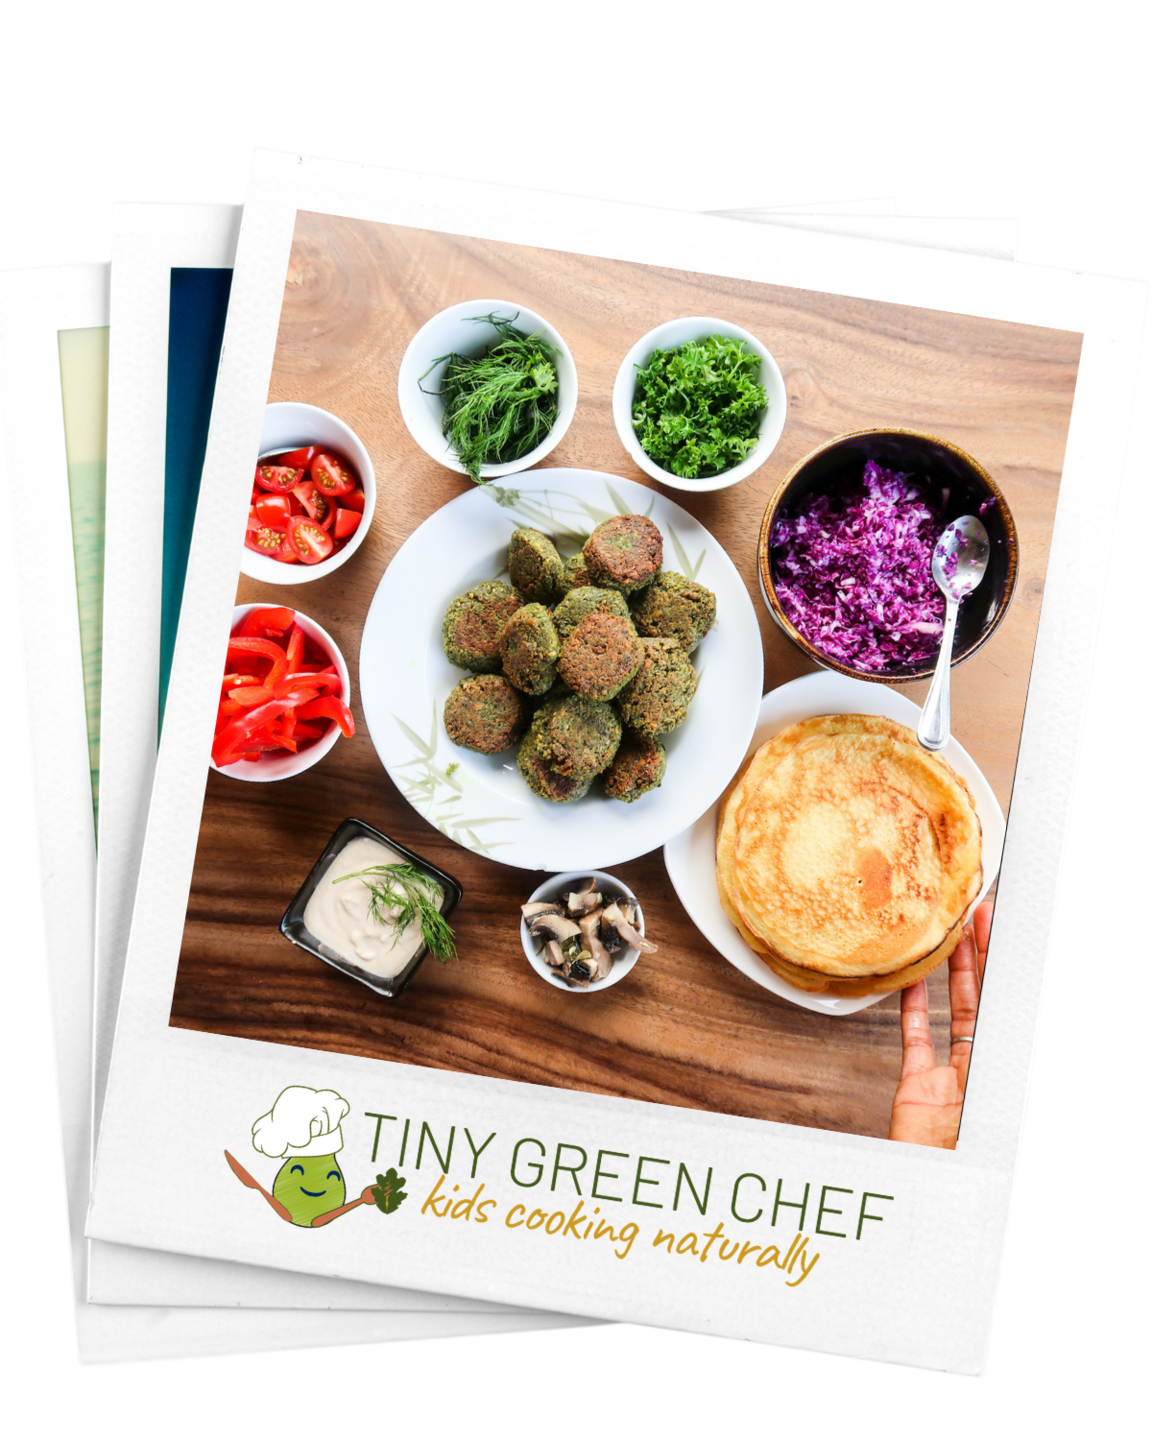 Tiny Green Chef - Kids Cooking Naturally